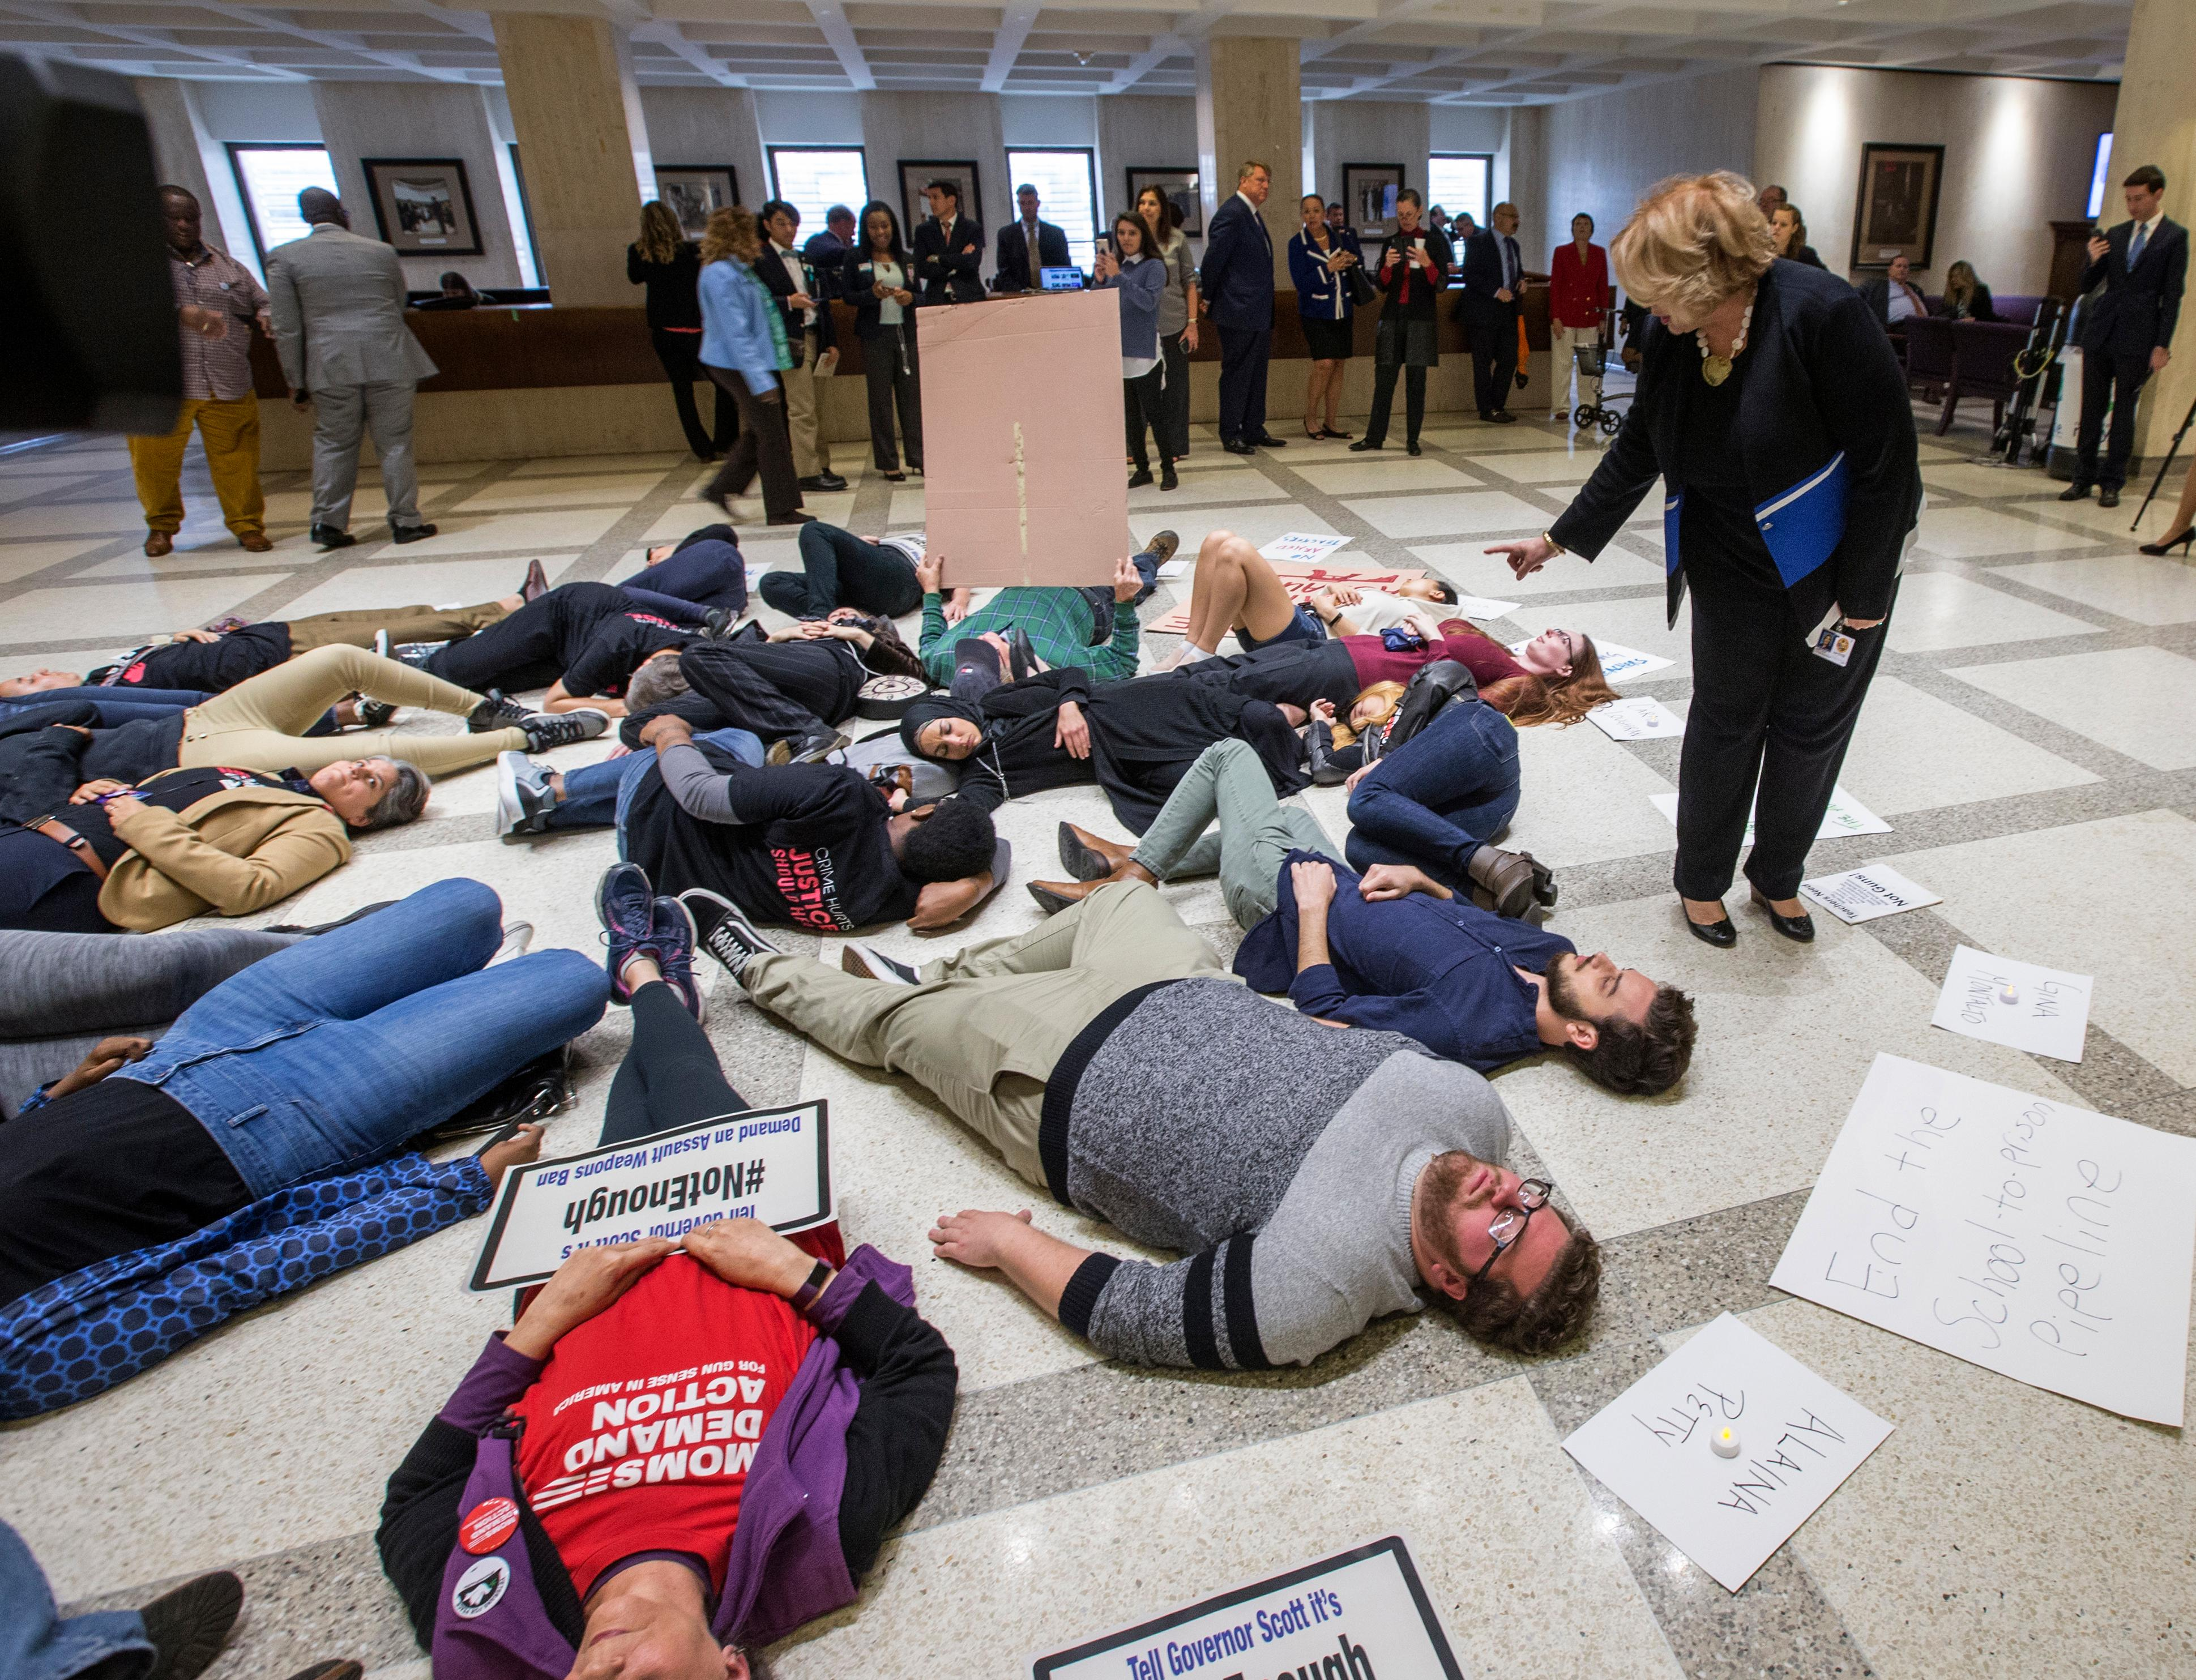 Florida Rep. Janet Cruz (D-Tampa) walks around a group of 20 college students and activists as they stage a die-in on the 4th floor rotunda between the House and Senate chambers while the House takes up the school safety bill at the Florida Capital in Tallahassee, Fla., Tuesday March 6, 2018. (AP Photo/Mark Wallheiser)